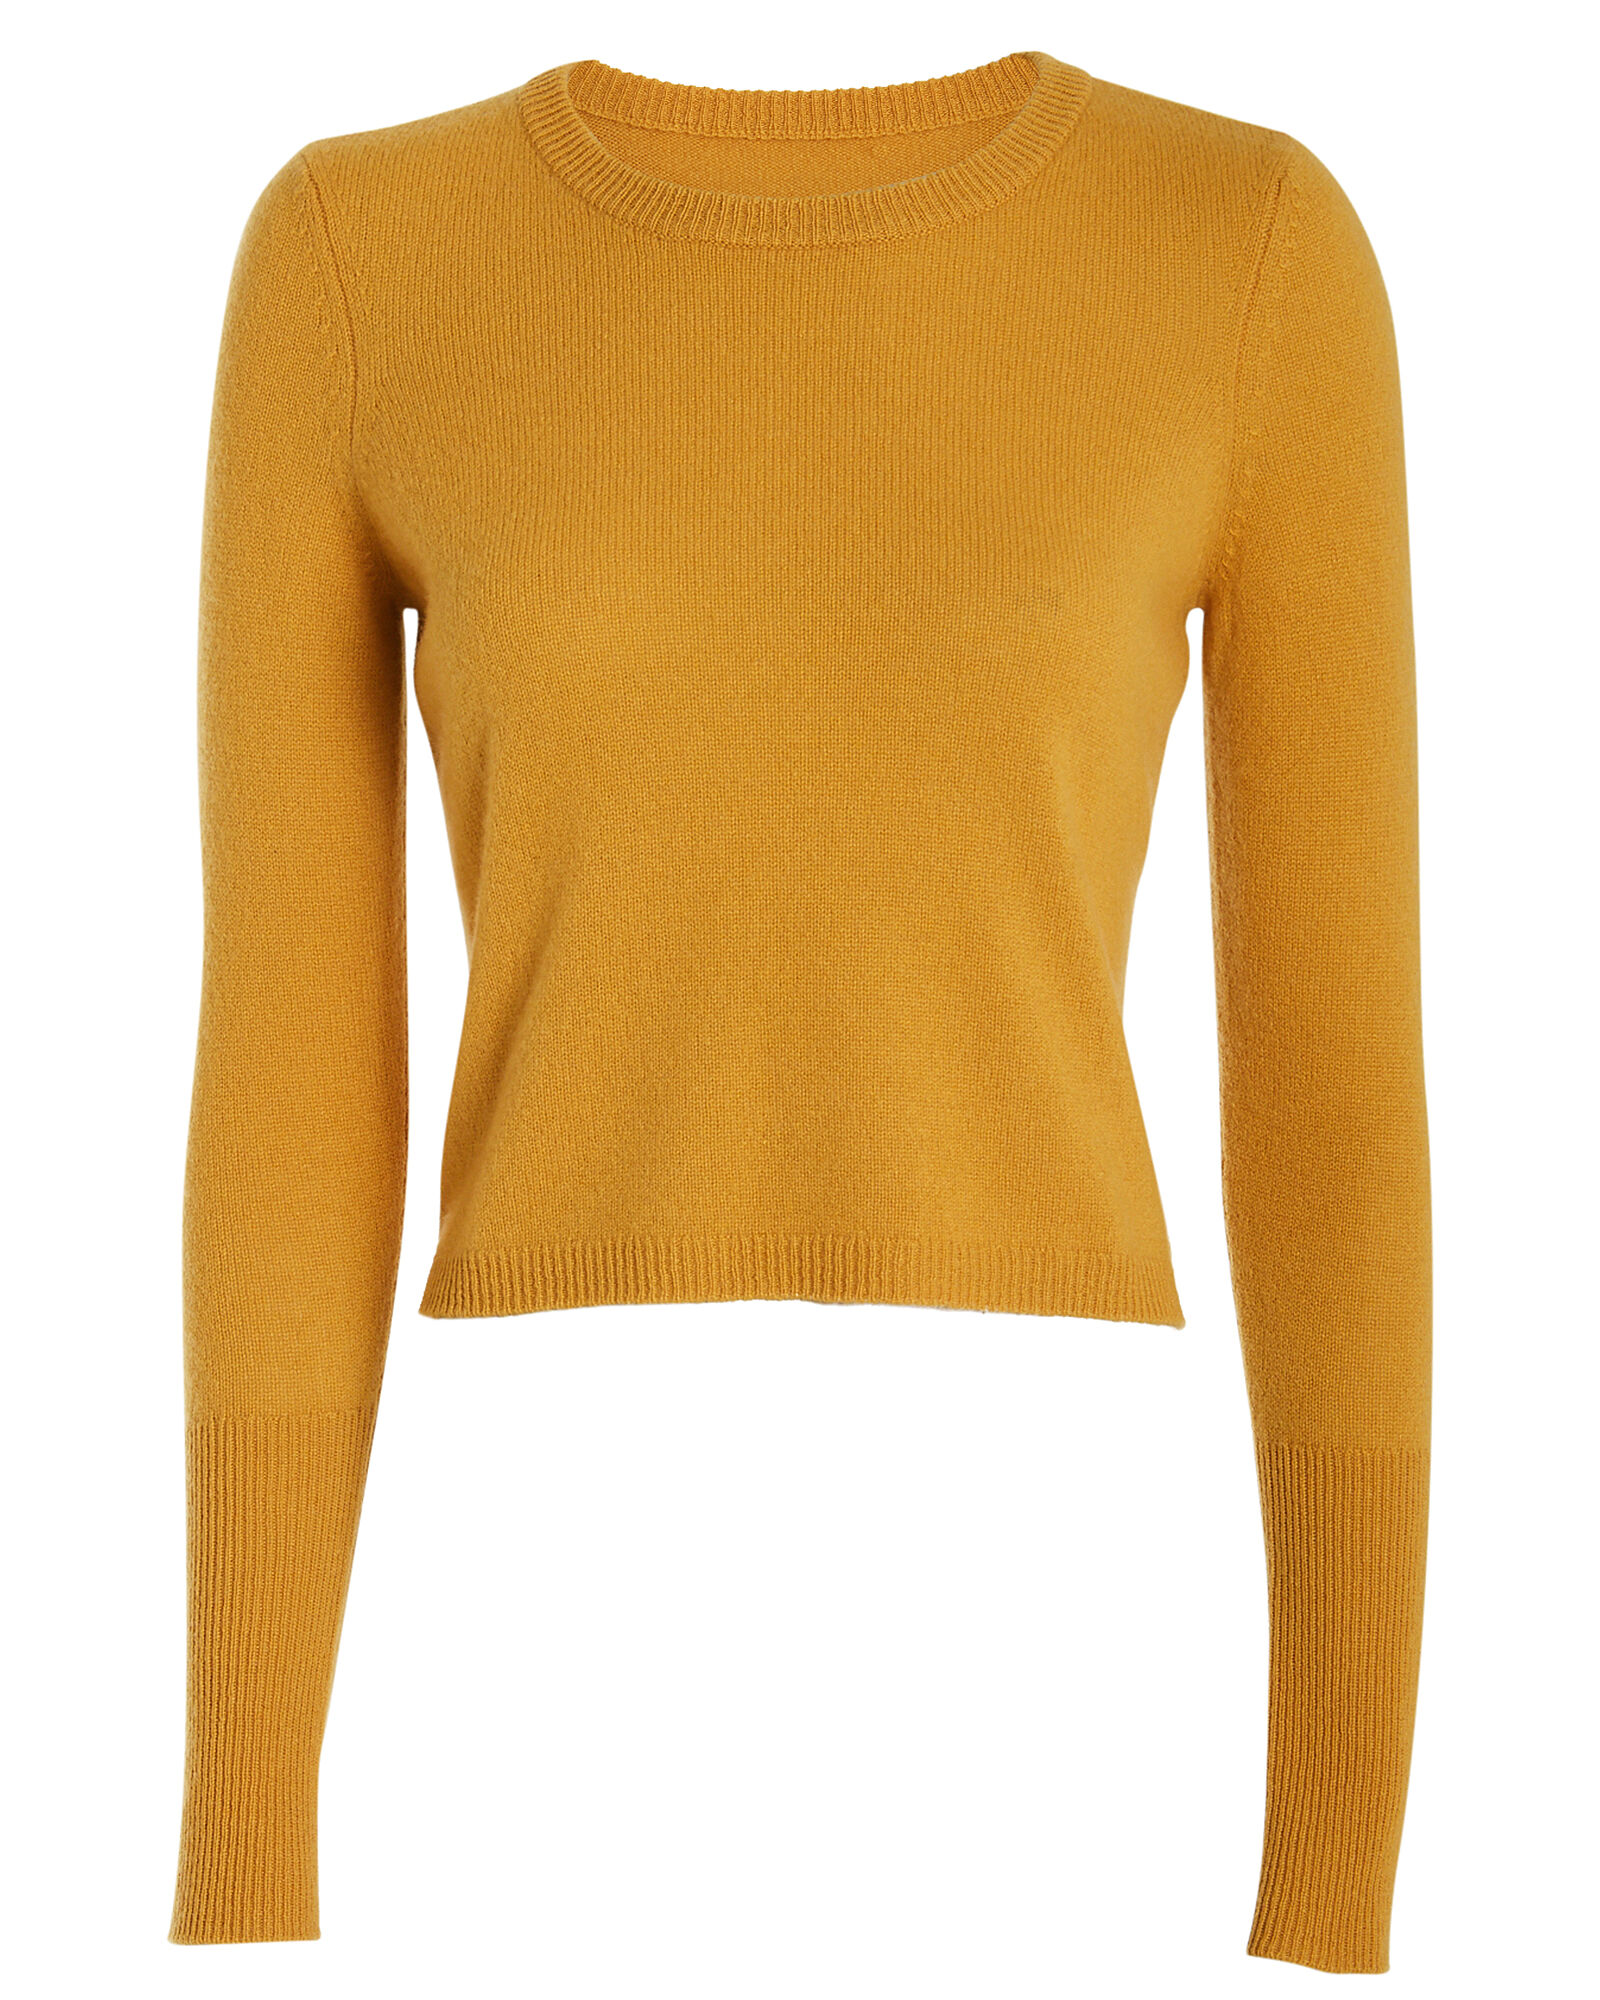 Valencia Cashmere Crewneck Sweater, YELLOW, hi-res